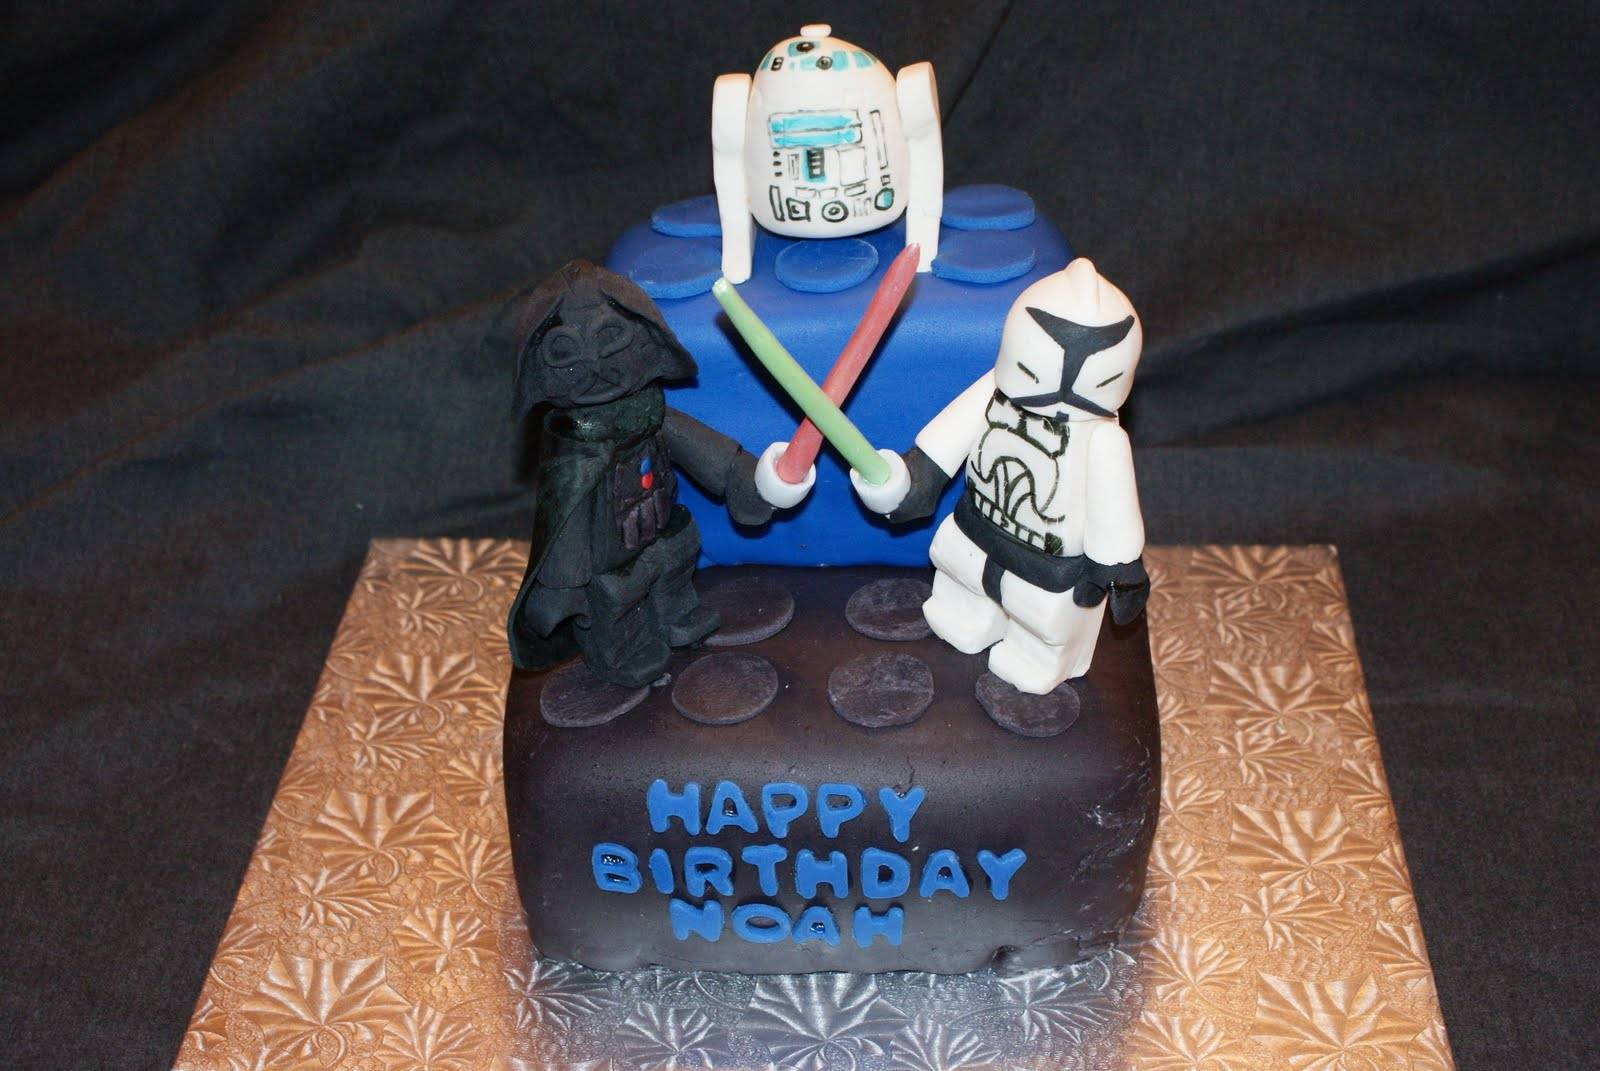 Star Wars Cake Ideas Images : Star Wars Cakes   Decoration Ideas Little Birthday Cakes